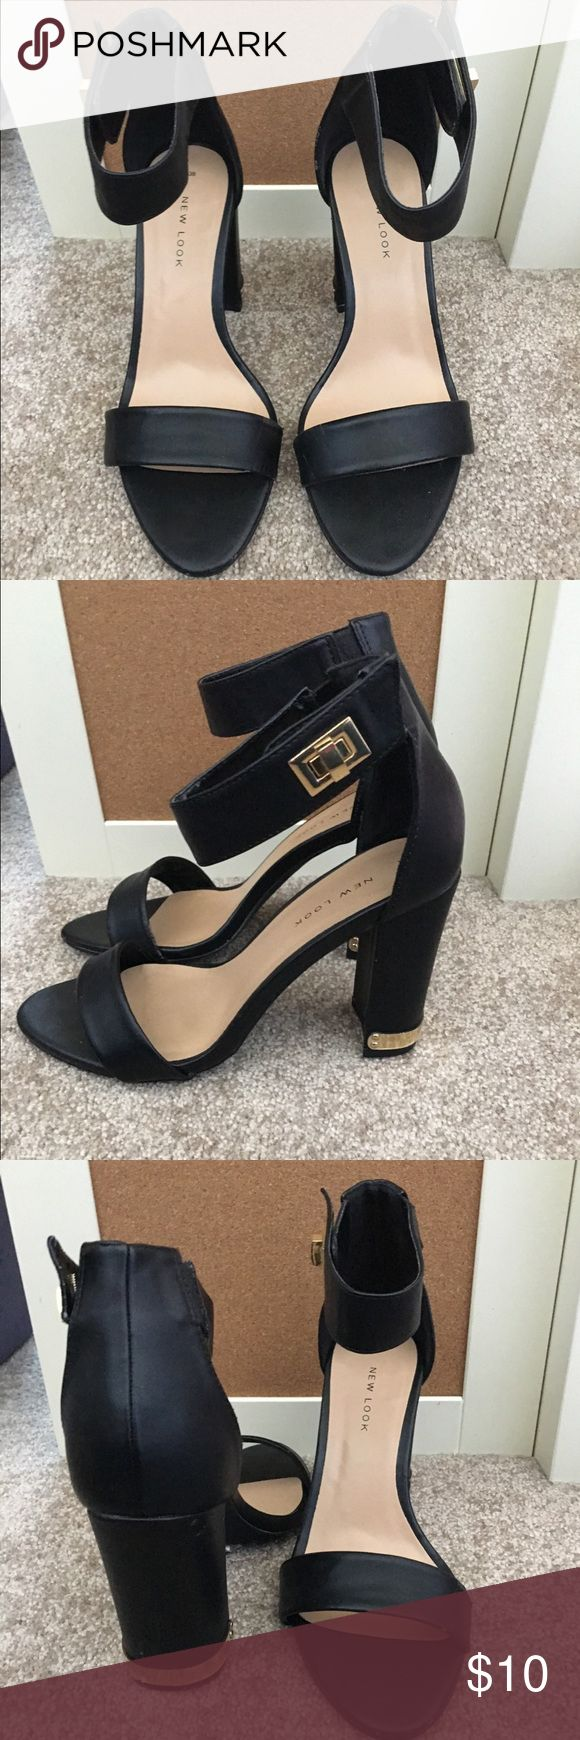 New Look black heels Super trendy heels with gold detailing. Im a 6.5/7, but these were a little too bug on me New Look Shoes Heels